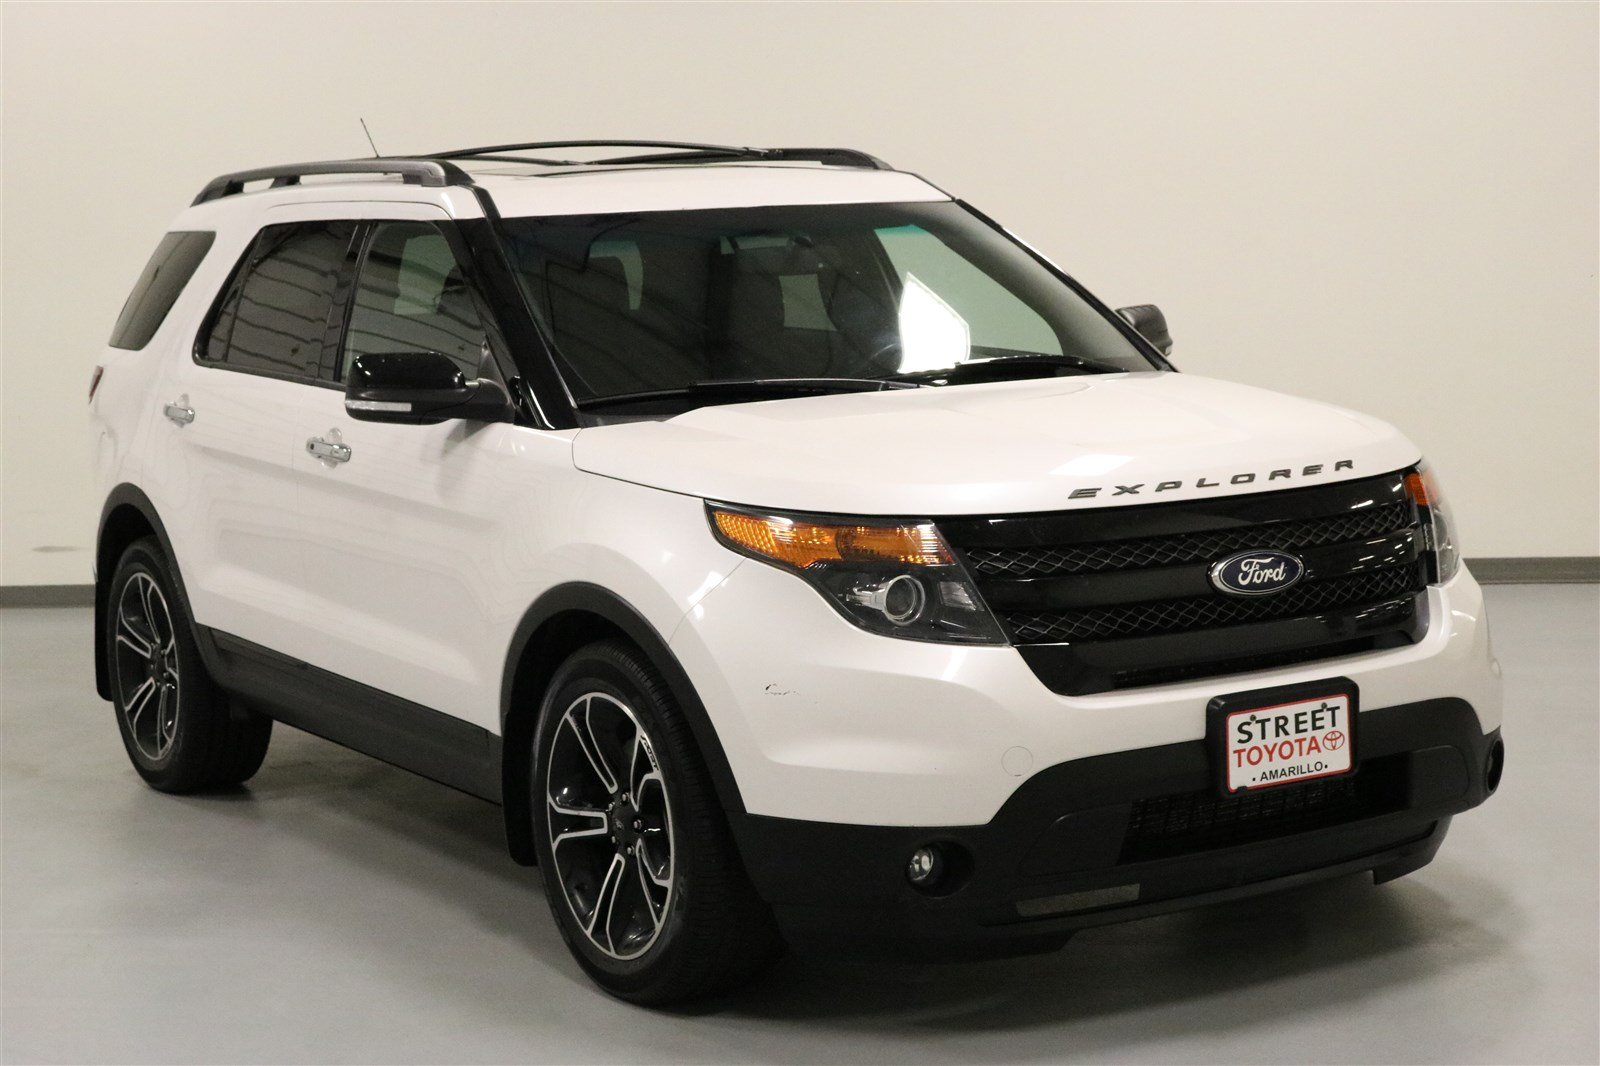 pre owned 2014 ford explorer for sale in amarillo tx 44070a. Black Bedroom Furniture Sets. Home Design Ideas